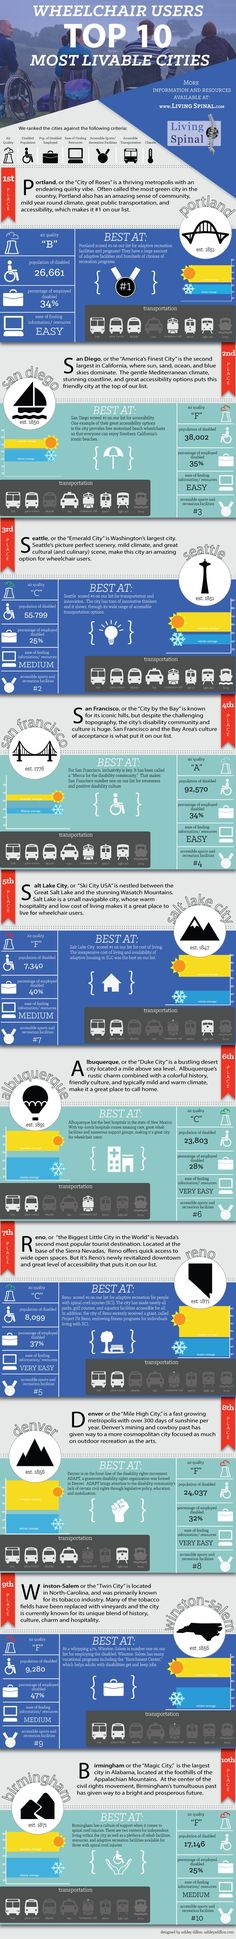 Top Ten Best #Places to Live for #Wheelchair Users - Do you fancy an infographic? There are a lot of them online, but if you want your own please visit www.linfografico.... Online girano molte infografiche, se ne vuoi realizzare una tutta tua visita www.linfografico....